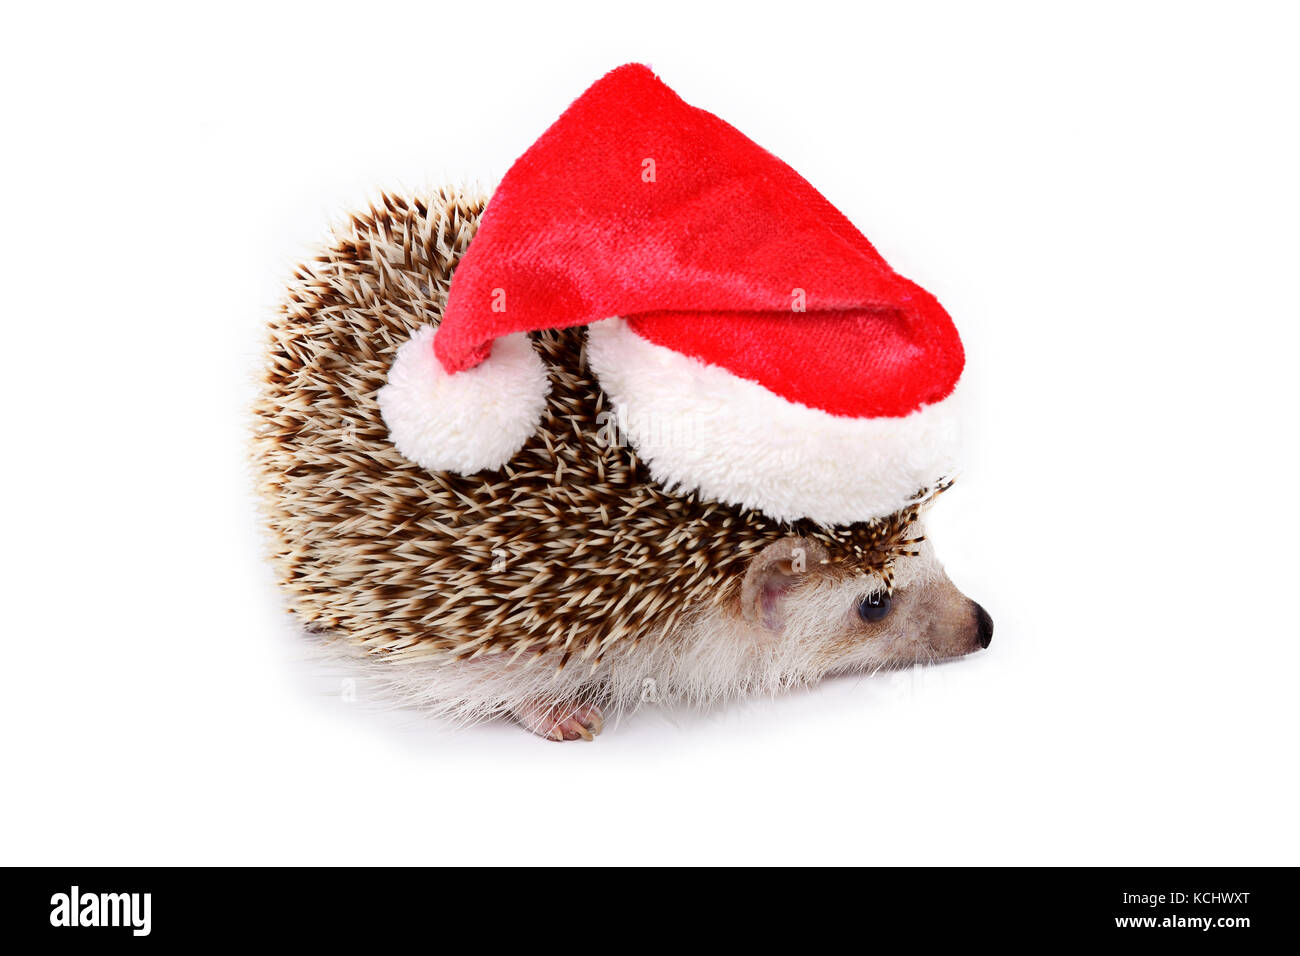 Cute hedgehog with red santa hat on white background. - Stock Image